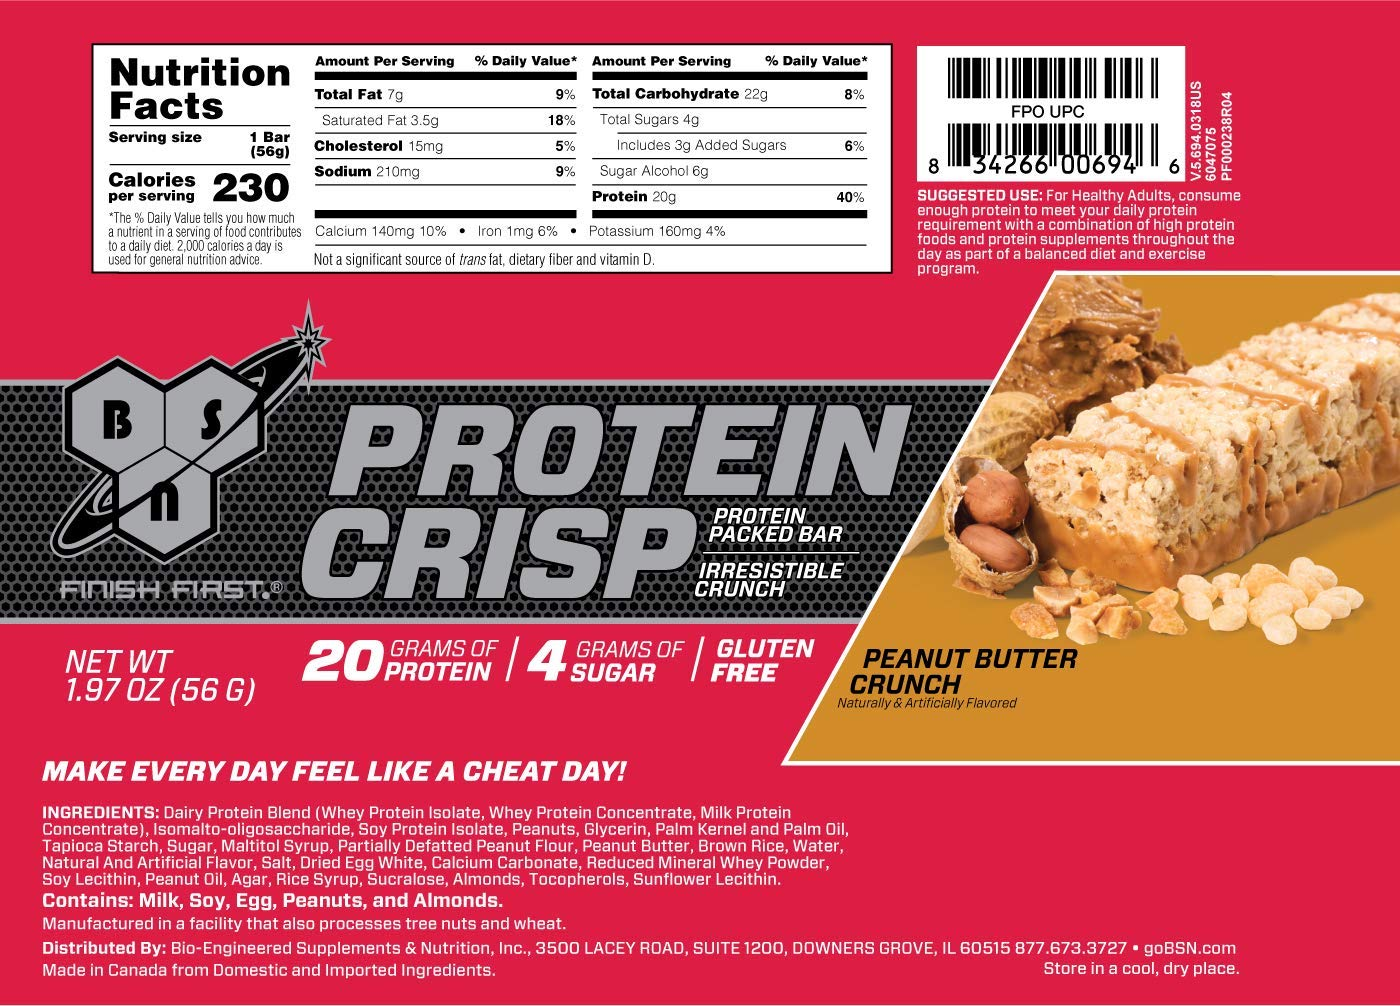 BSN Protein Crisp Bar by Syntha-6, Low Sugar Whey Protein Bar, 20g of Protein, Peanut Butter Crunch, 12 Count (Packaging may vary) by BSN (Image #7)